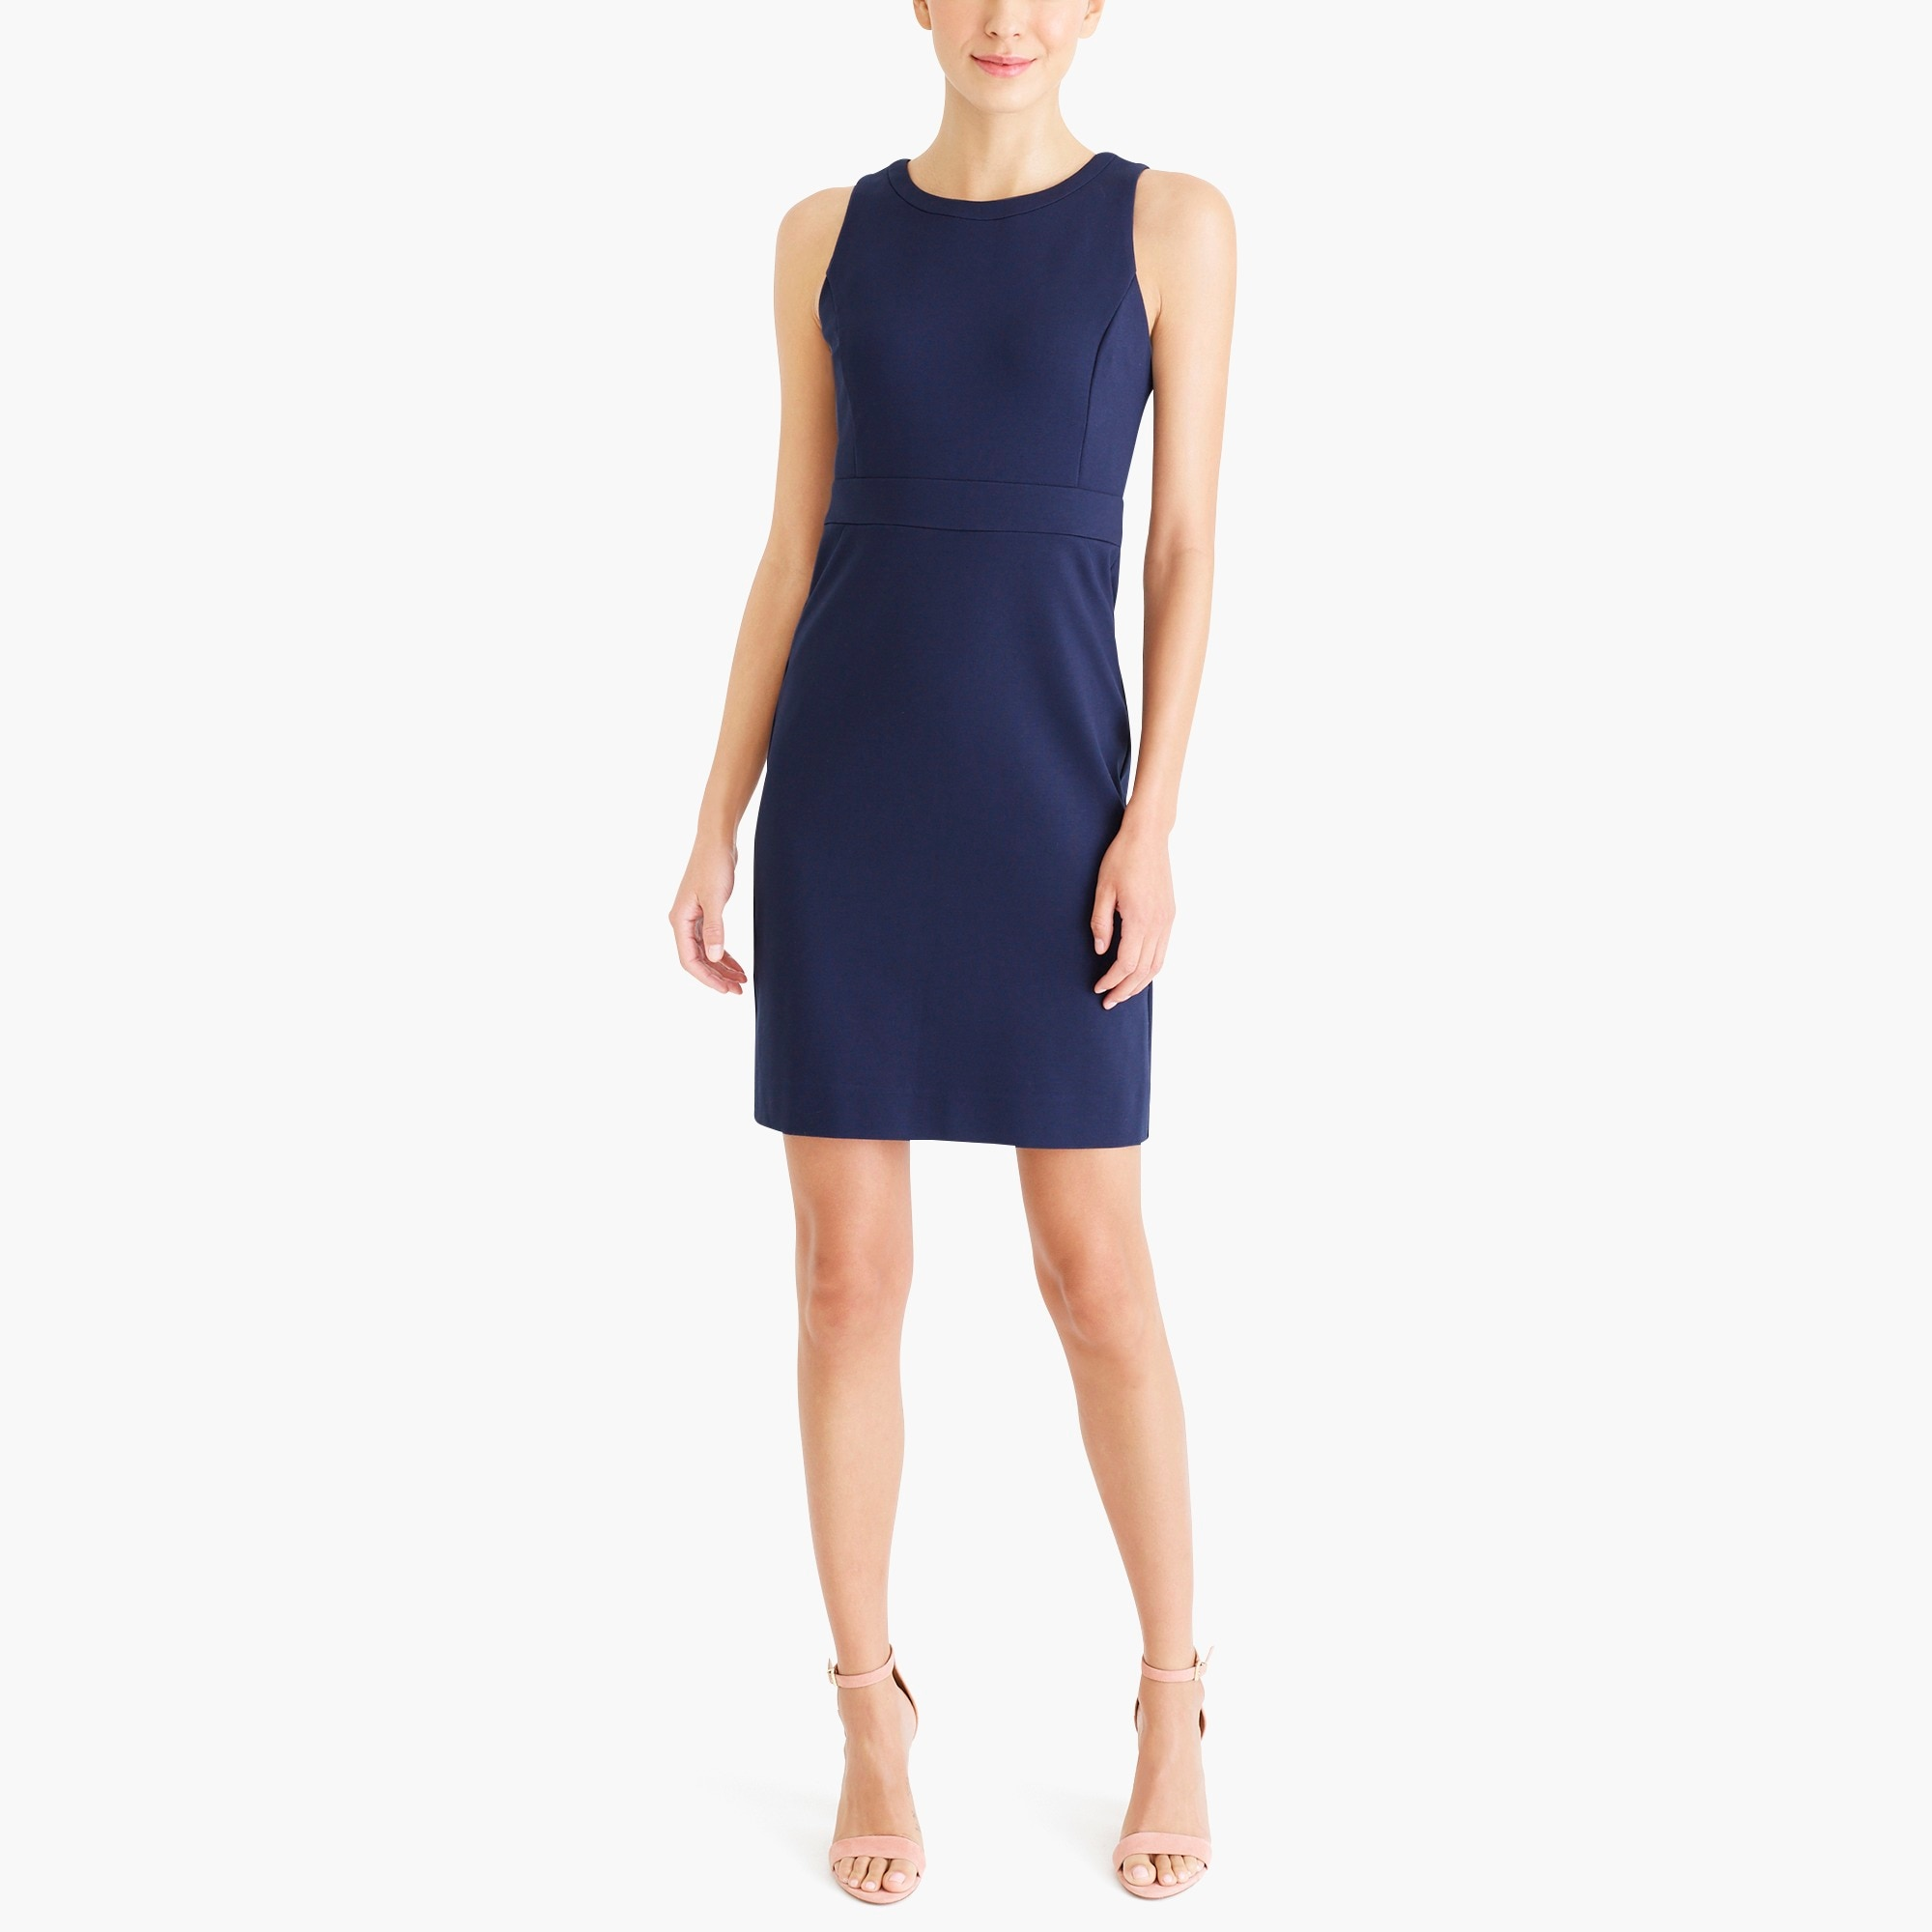 Image 1 for Ponte work dress